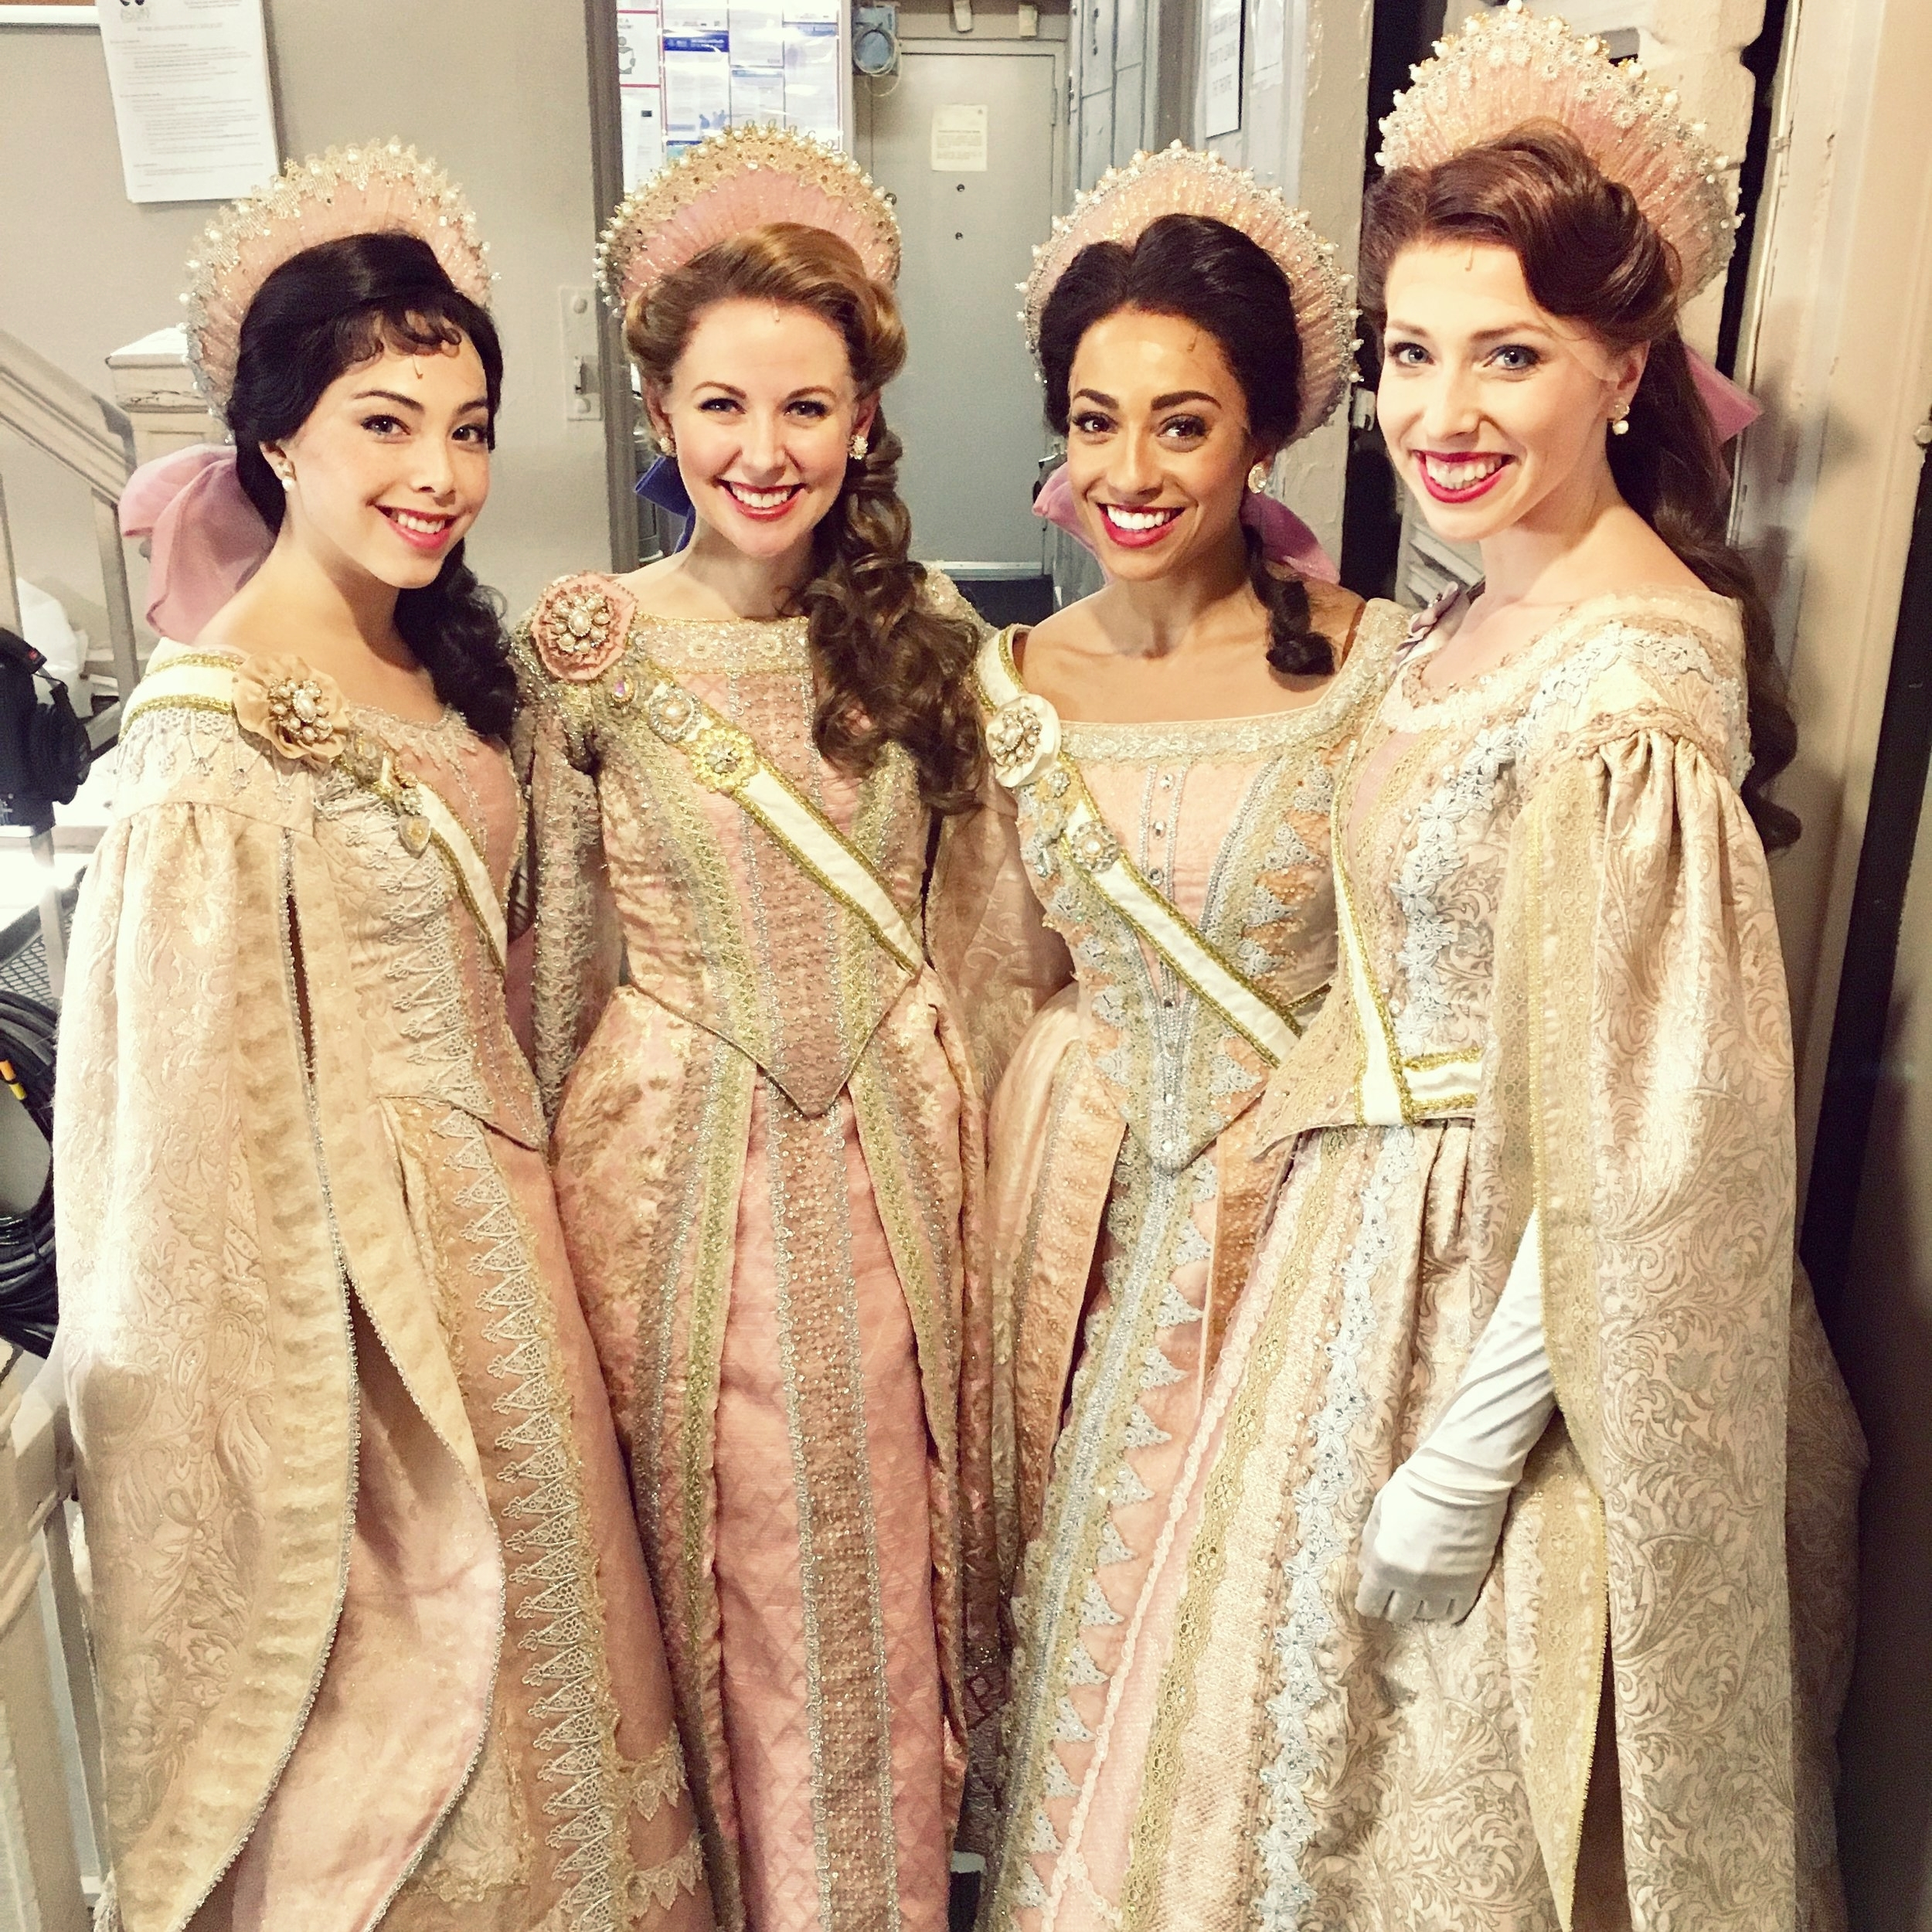 Anastasia: The Romanov Sisters with Allison Walsh, Shina Ann Morris and Sissy Bell